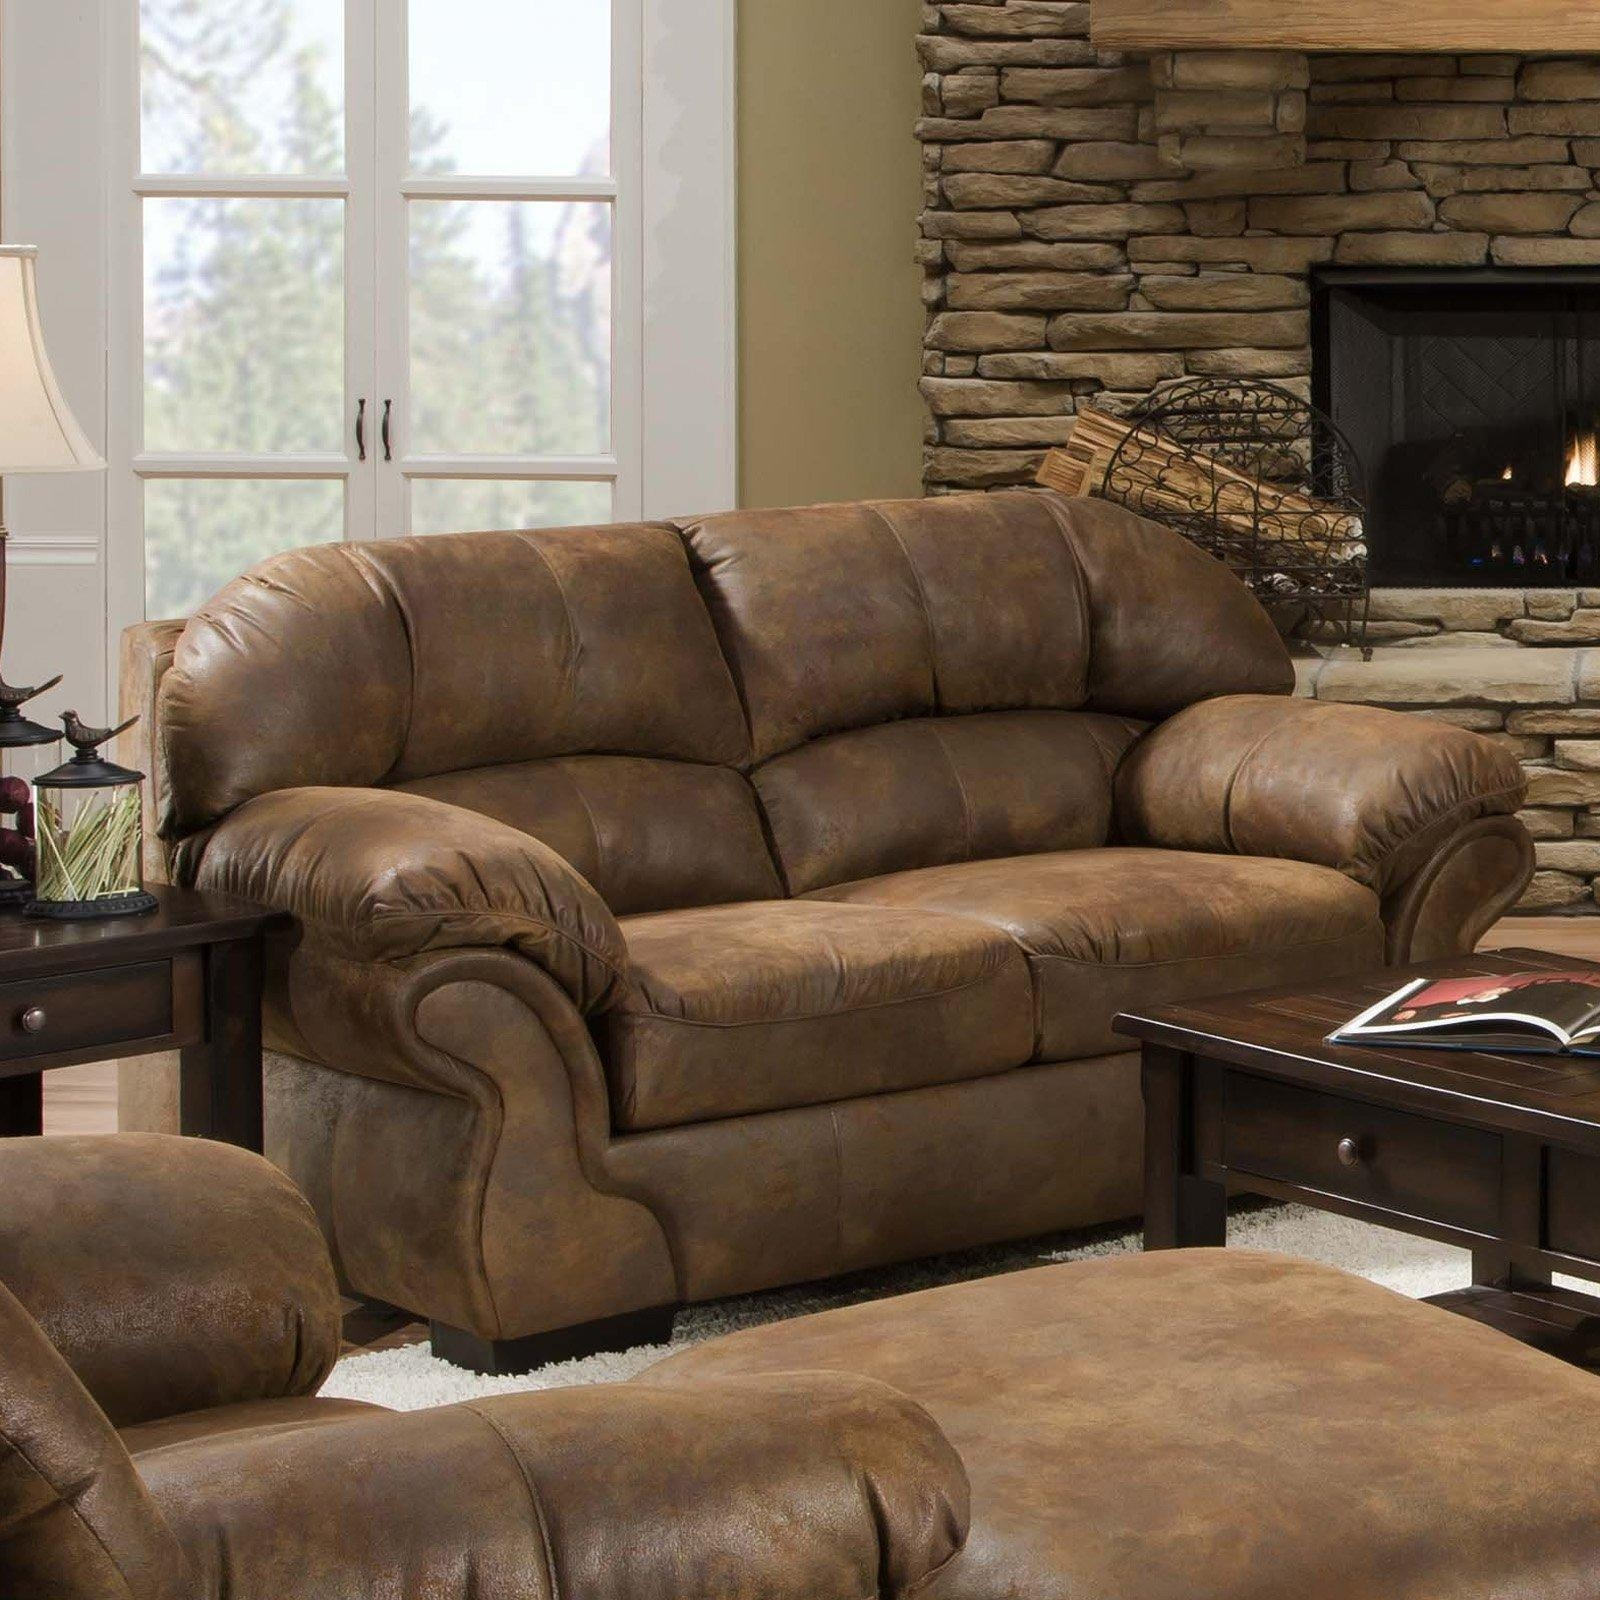 Simmons Upholstery Sofas & Loveseats | Hayneedle Throughout Simmons Microfiber Sofas (View 4 of 20)